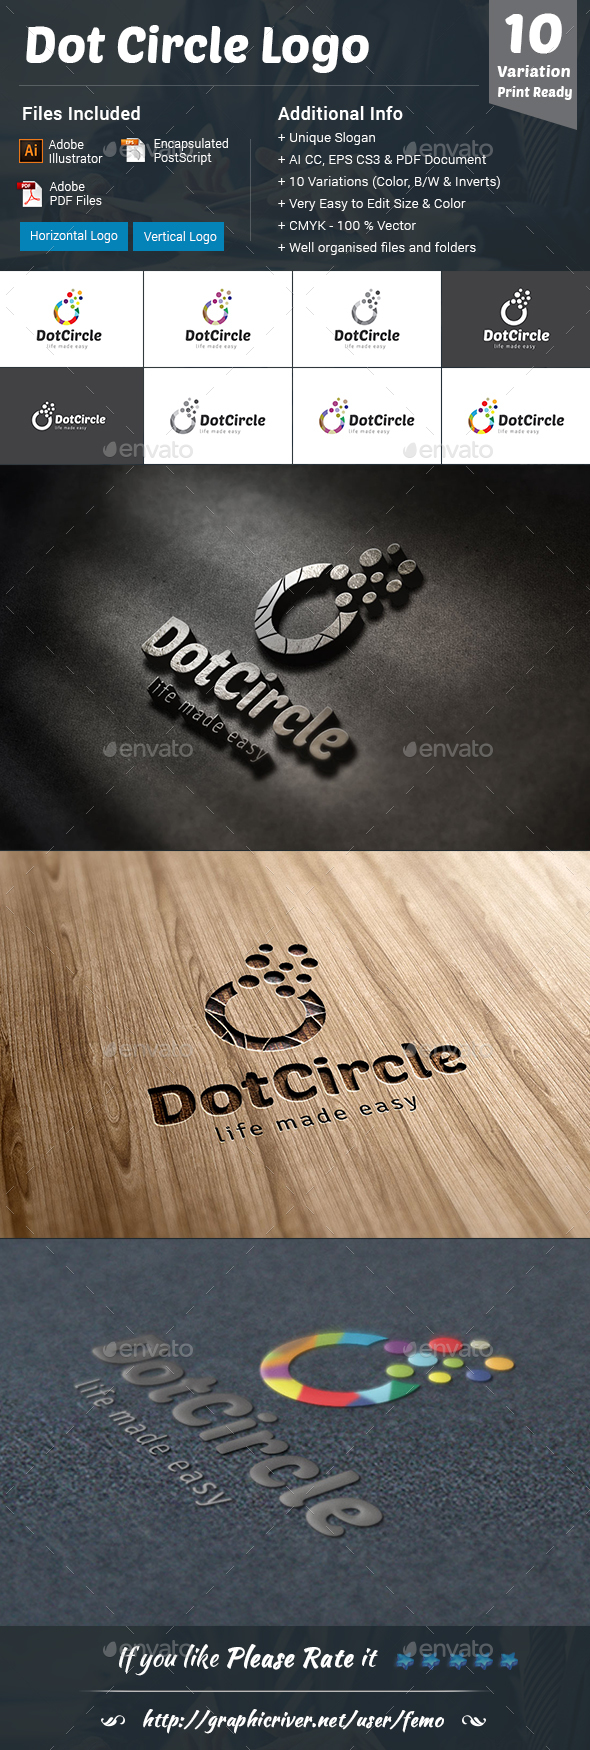 Dot Circle Logo - Vector Abstract